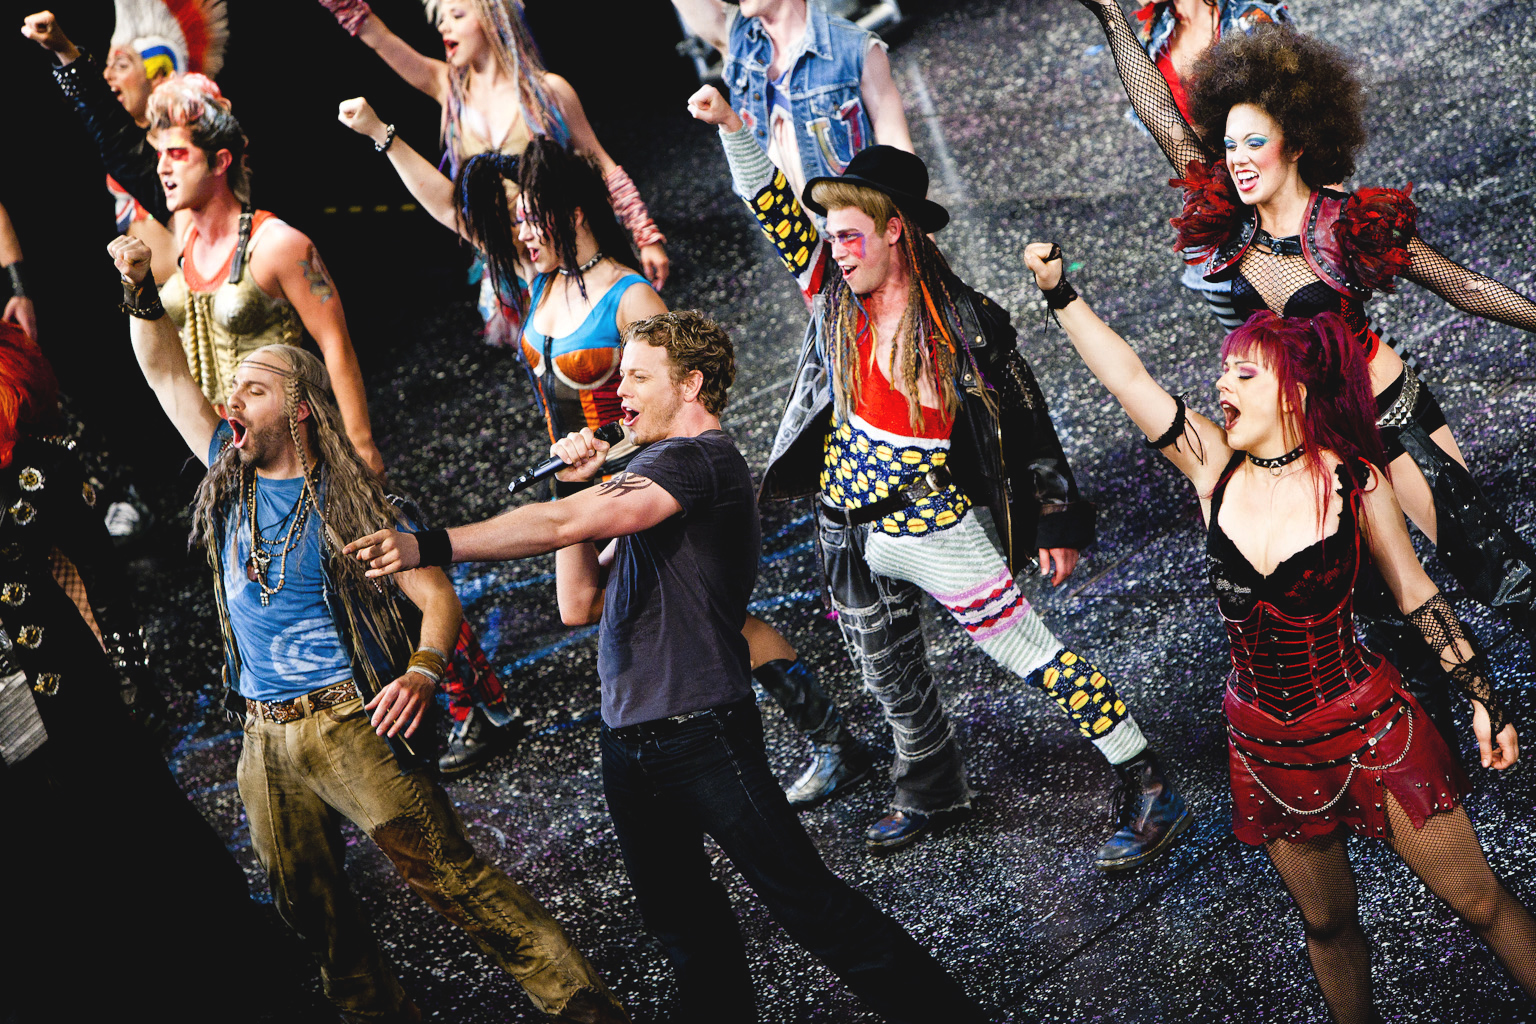 'WE WILL ROCK YOU' Rock Musical Experience Takes Stage at the Mahaffey